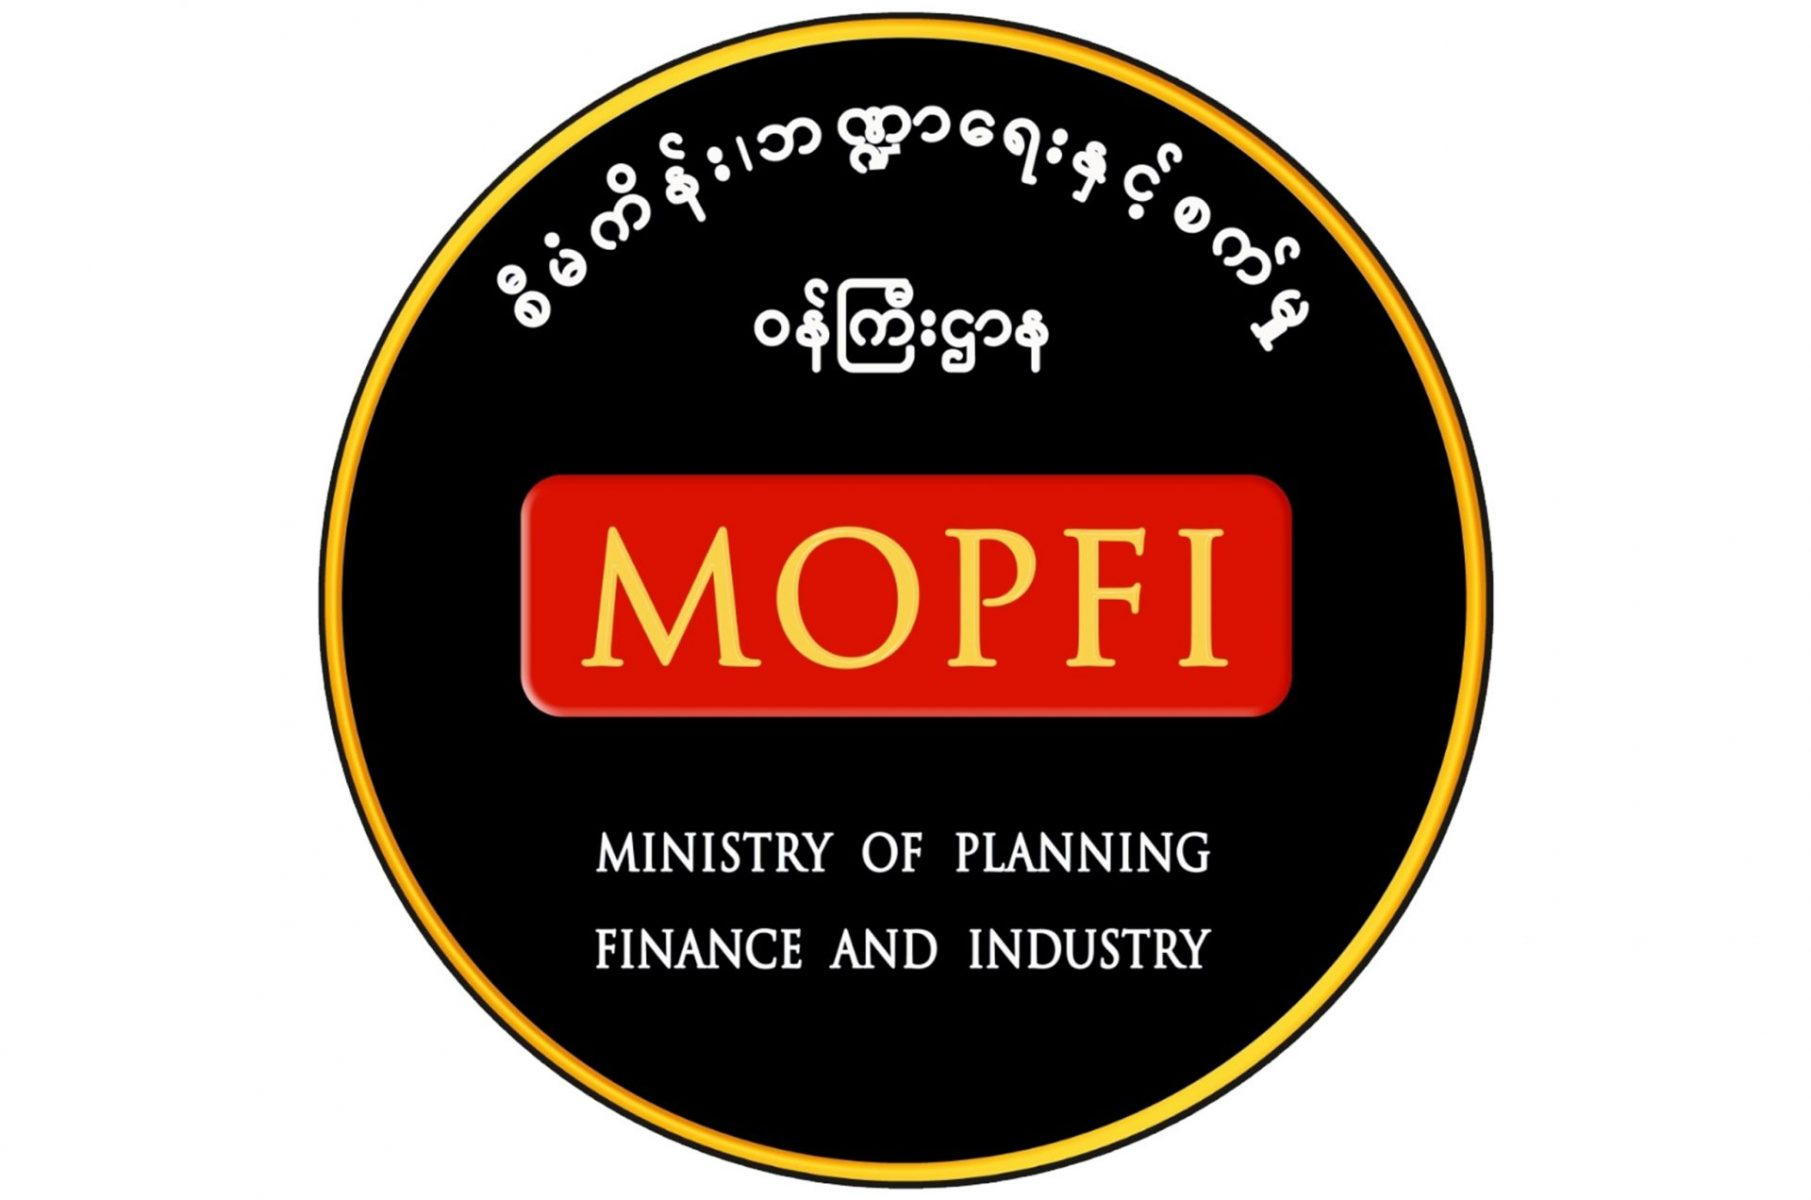 MOPFI small scaled